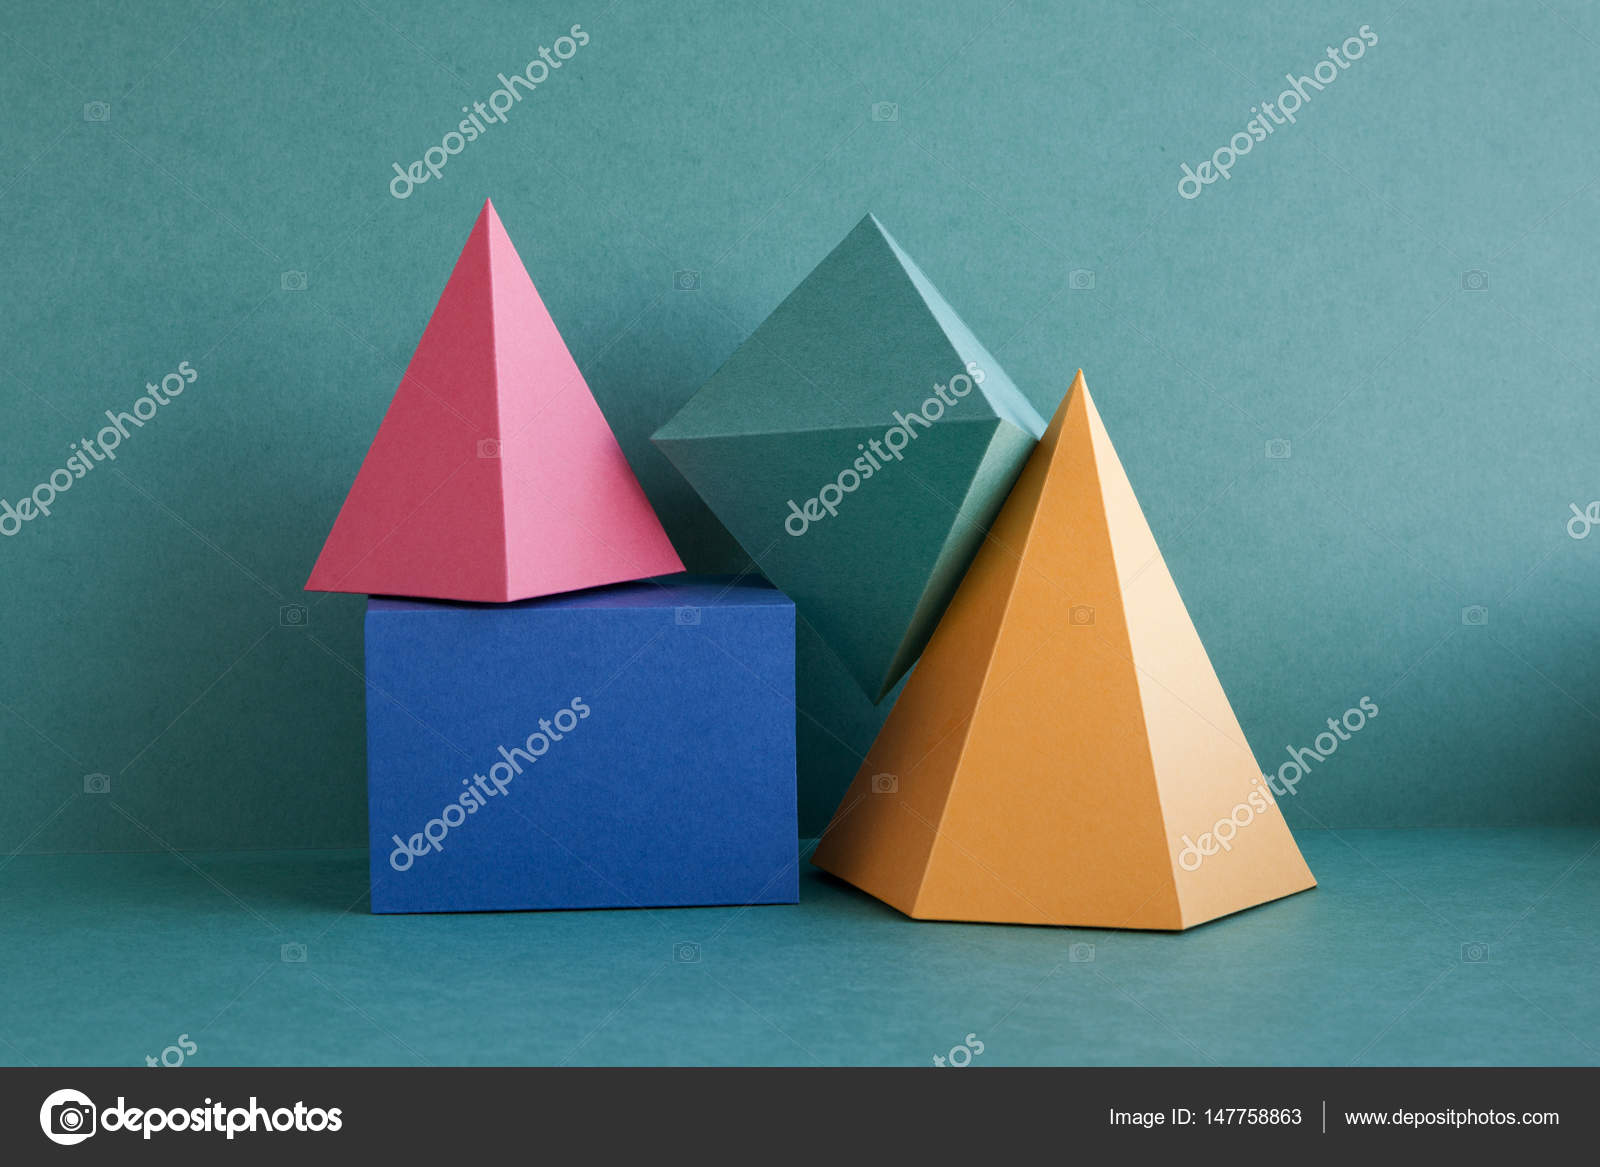 Colorful Abstract Geometric Background With Three Dimensional Solid